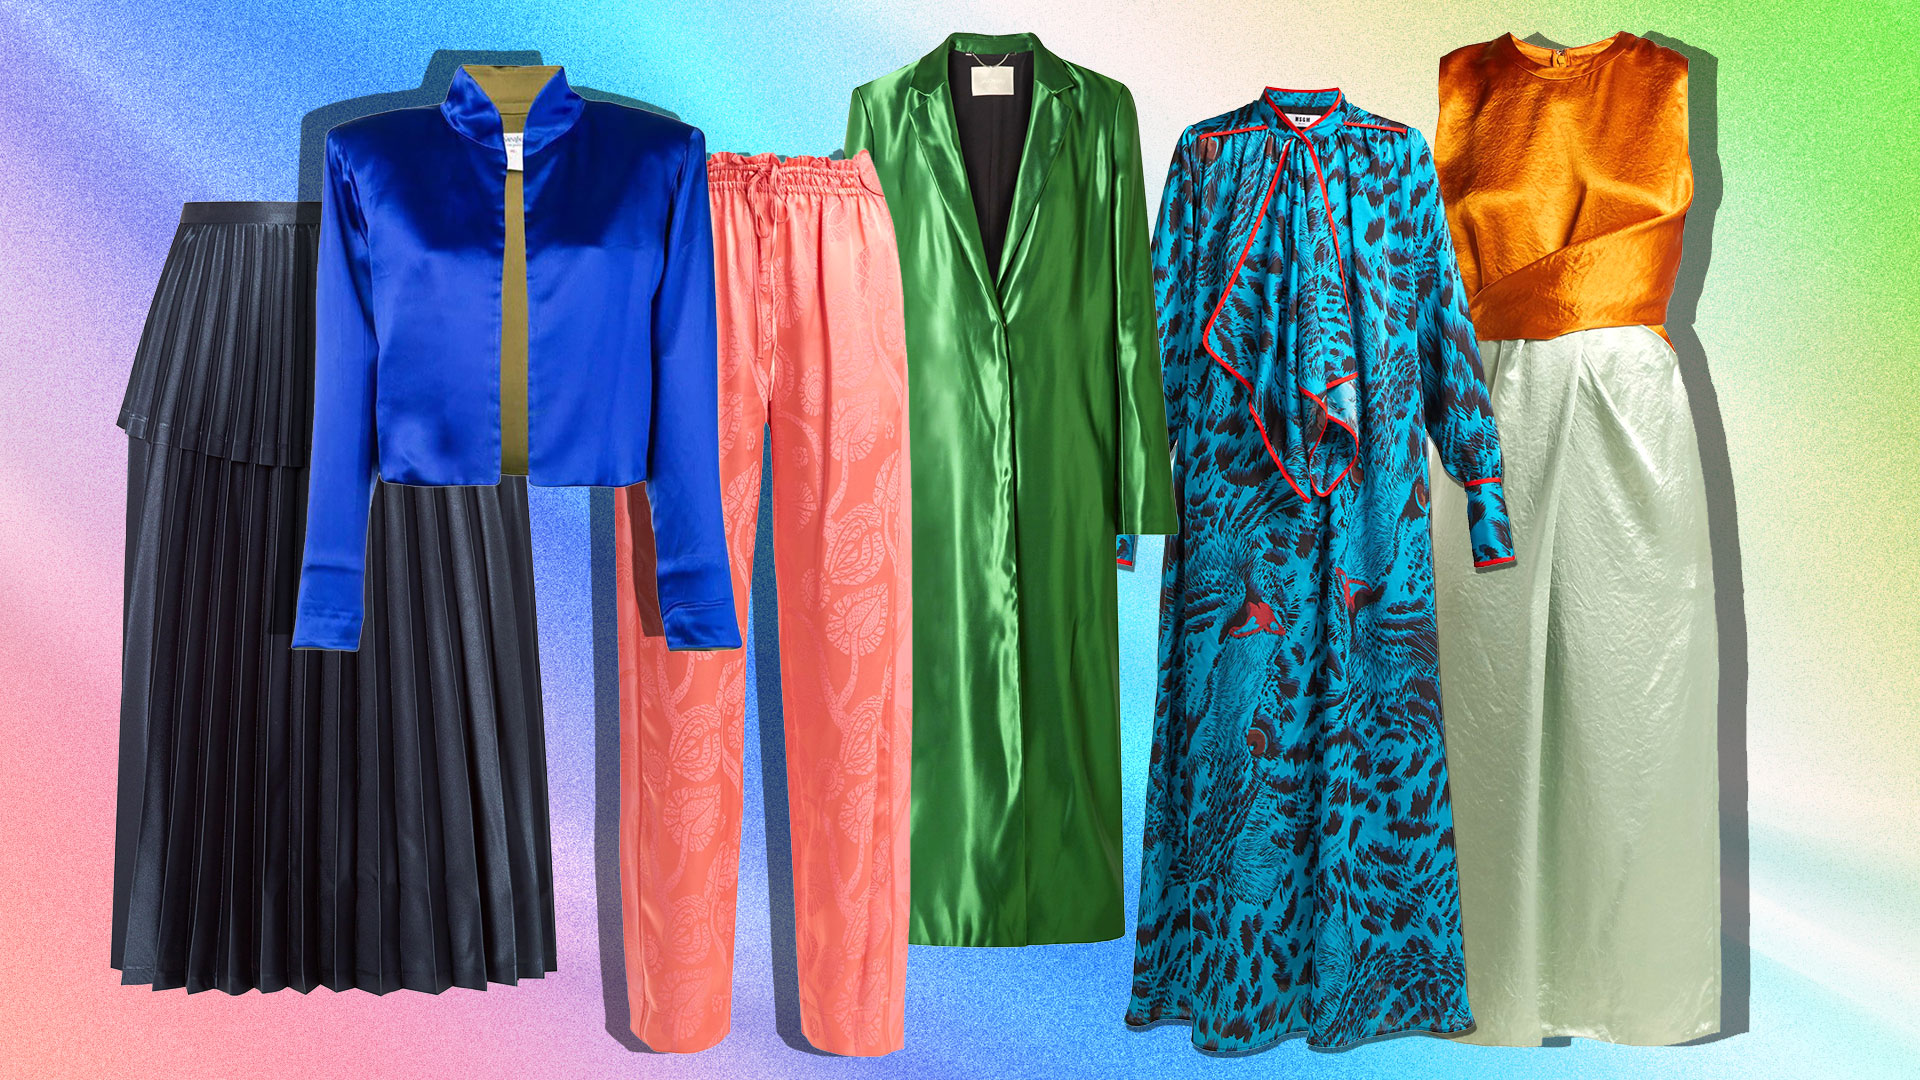 Silk Satin Pieces Are the Easiest Way to Vary a Heavy Fall Wardrobe